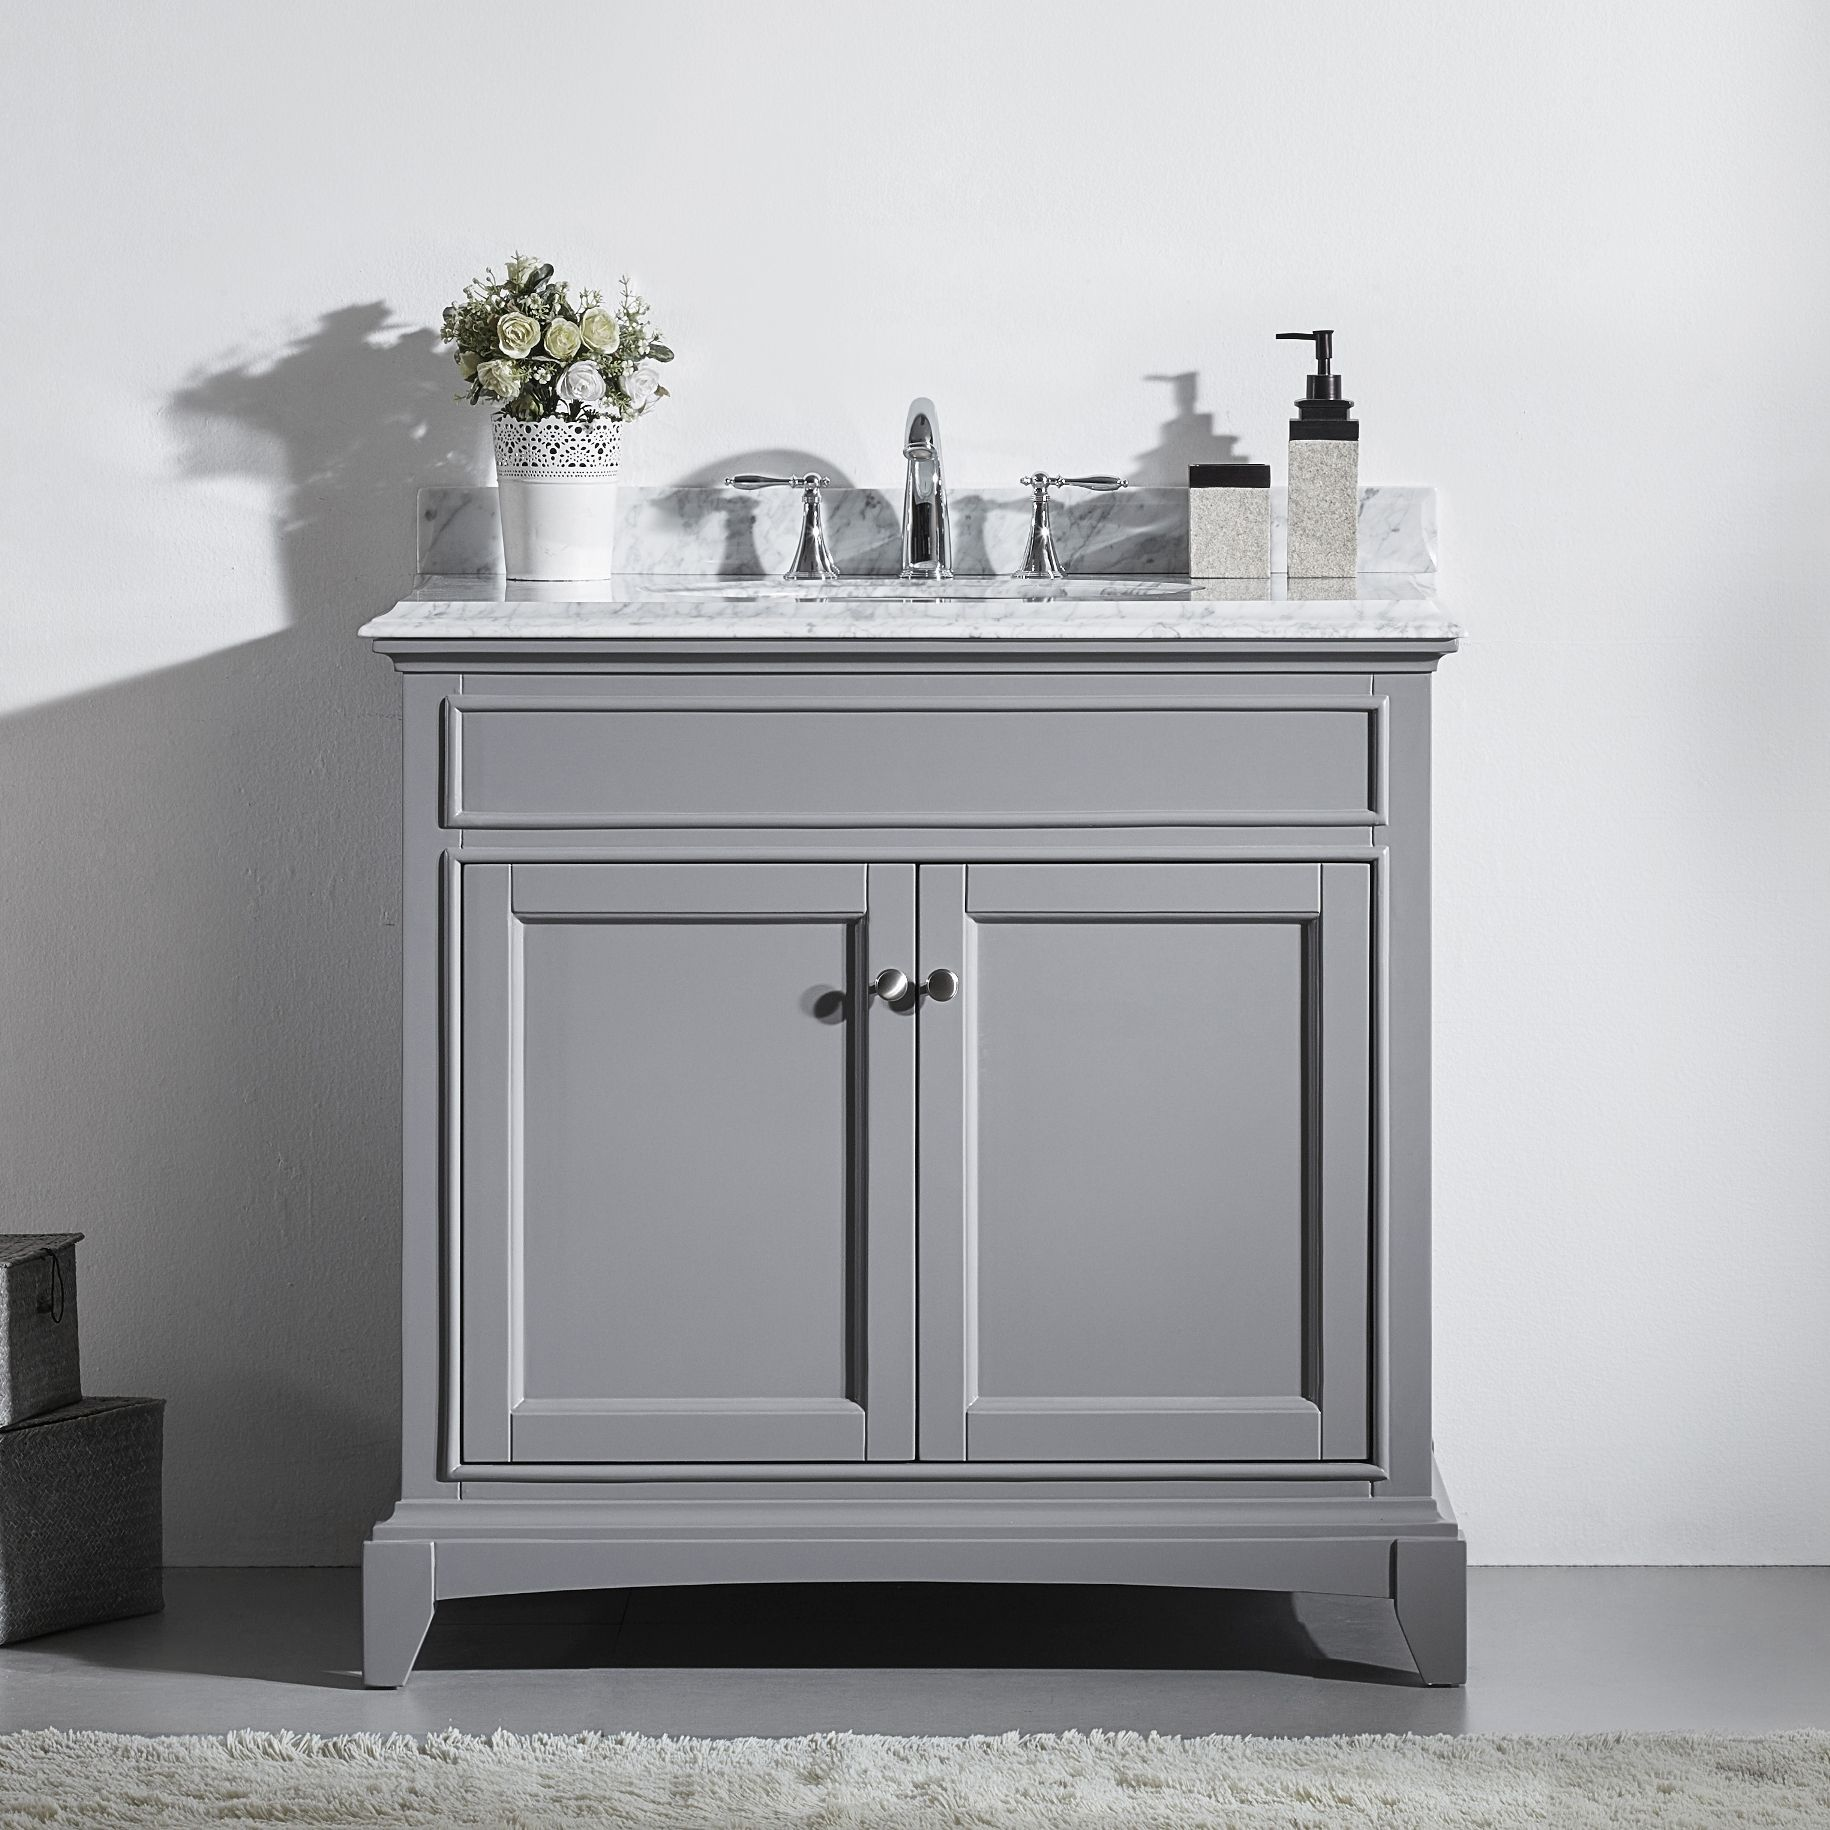 Stamford 36 Traditional Single Sink Bathroom Vanity In Grey With